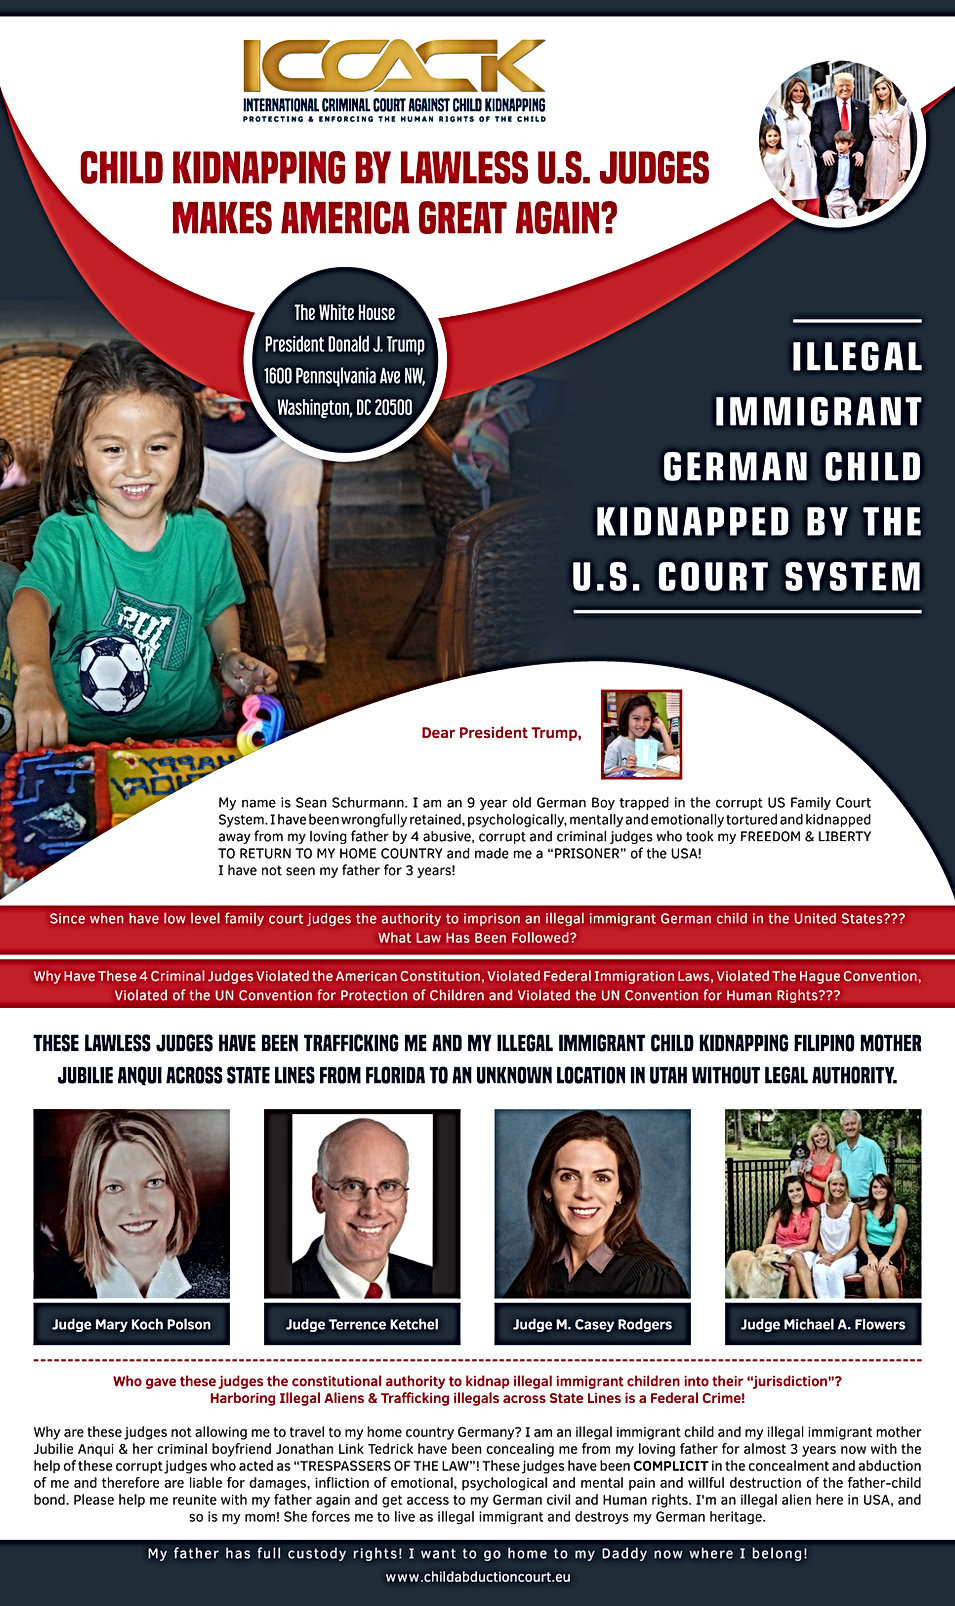 CHILD KIDNAPPING BY LAWLESS SANCTUARY CITY JUDGES MAKES AMERICA GREAT AGAIN?